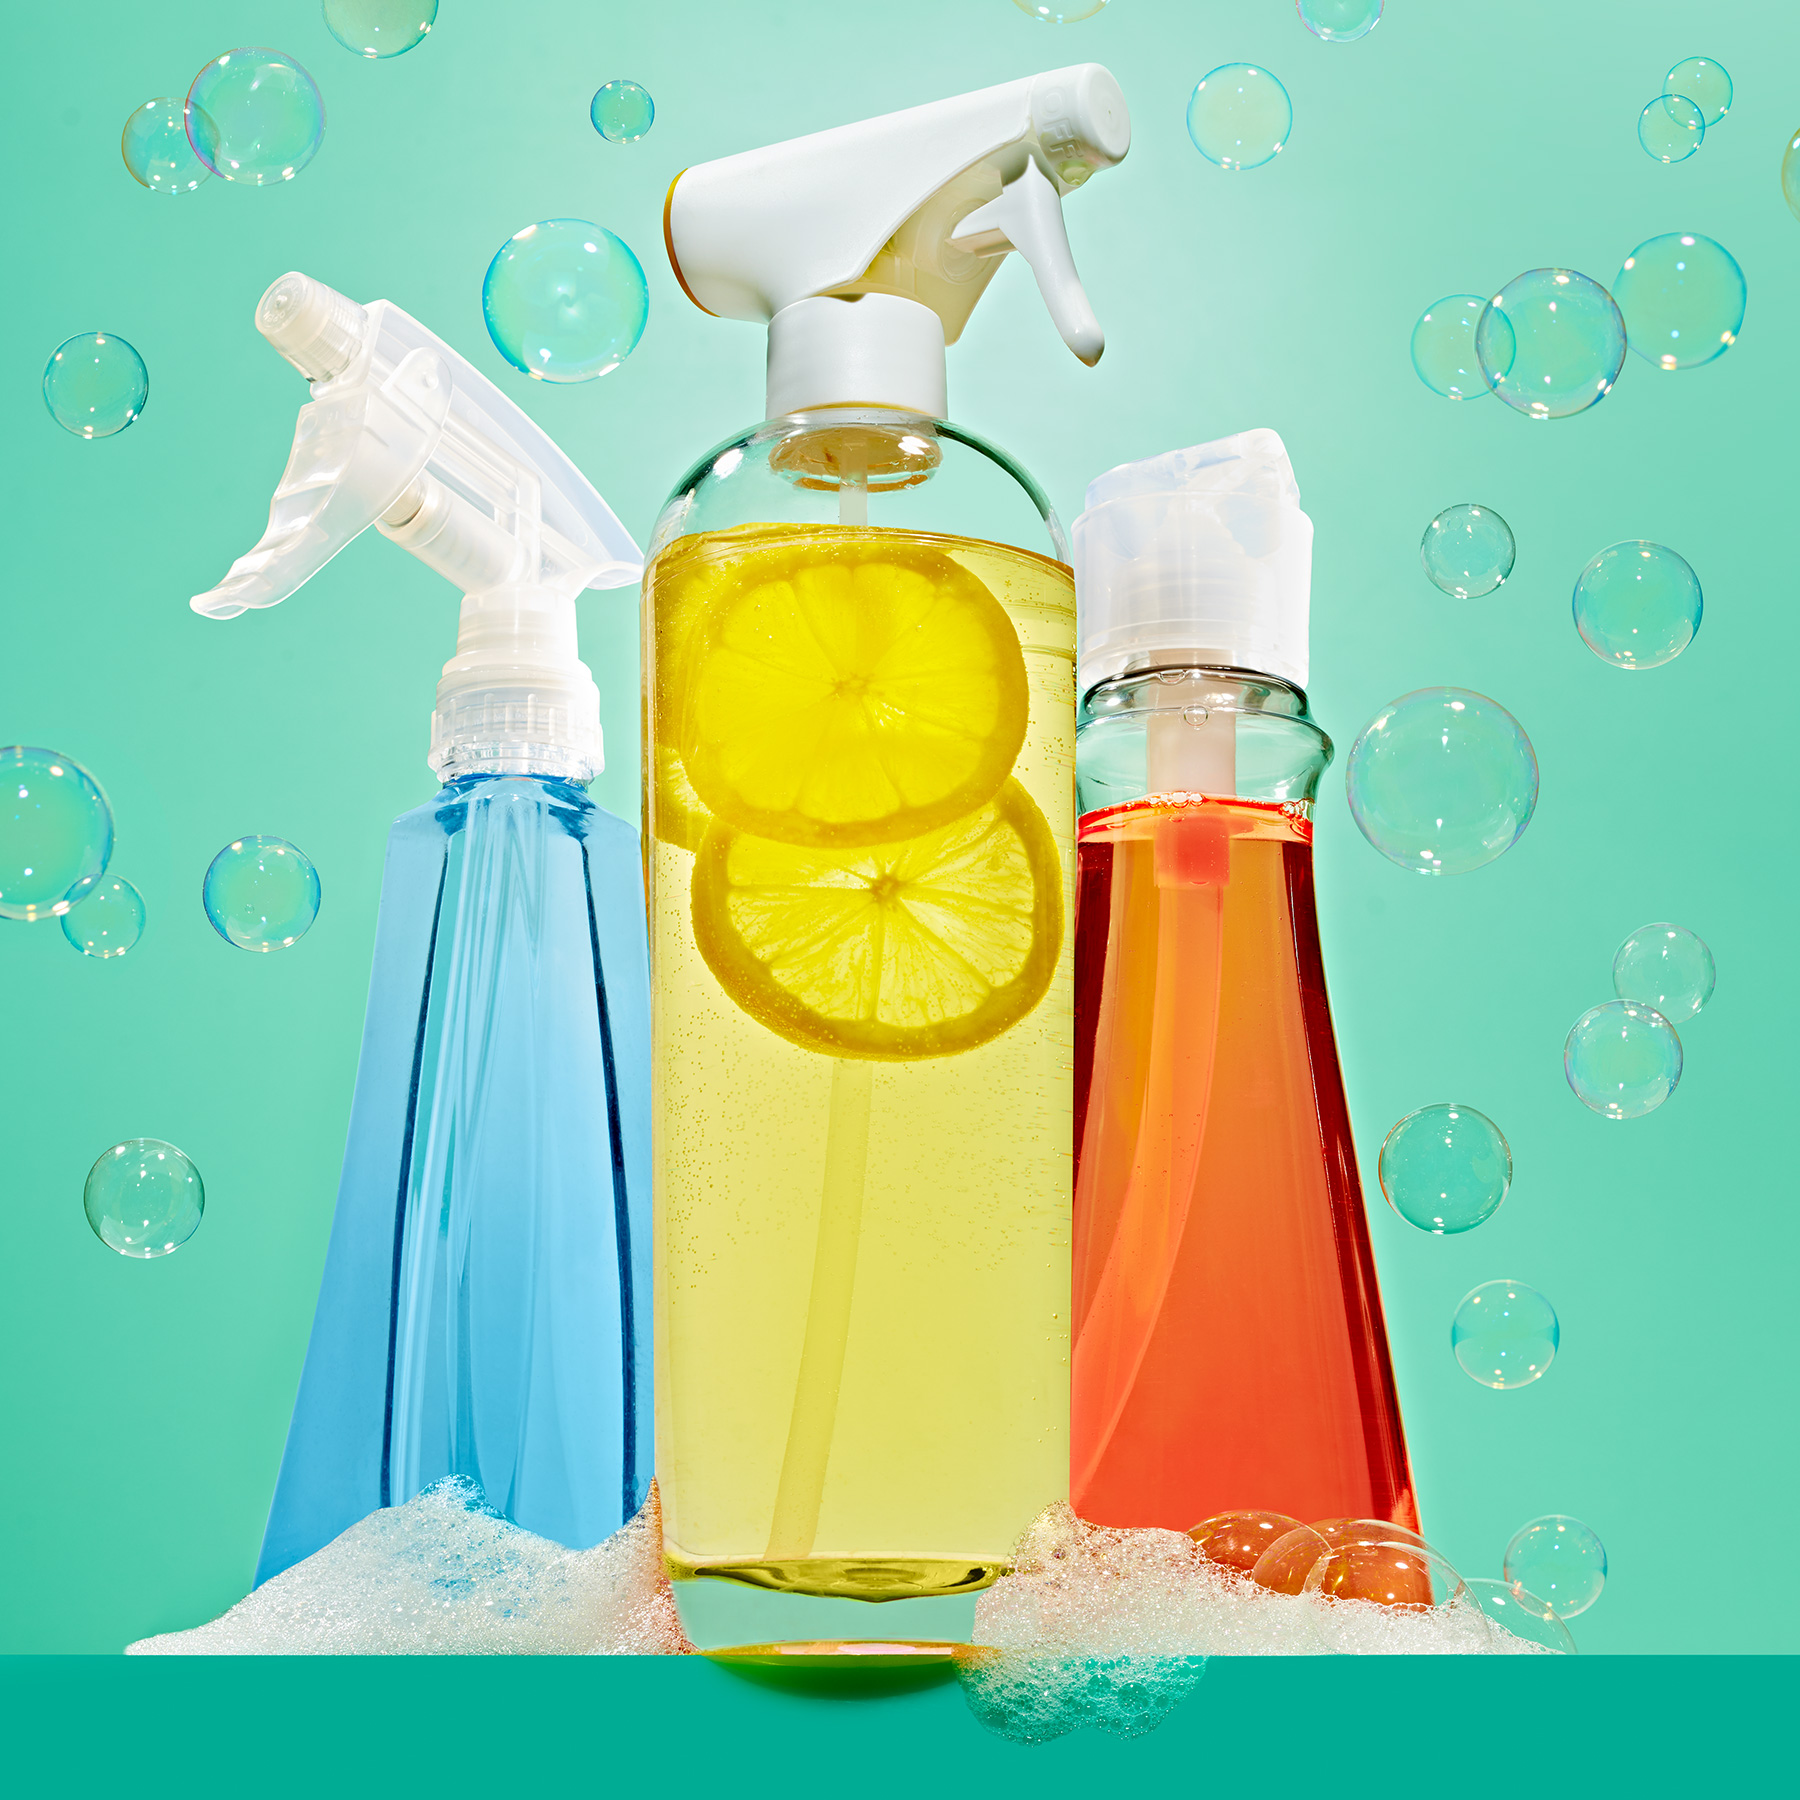 Natural Cleaning Guide: natural cleaners and soap bubbles